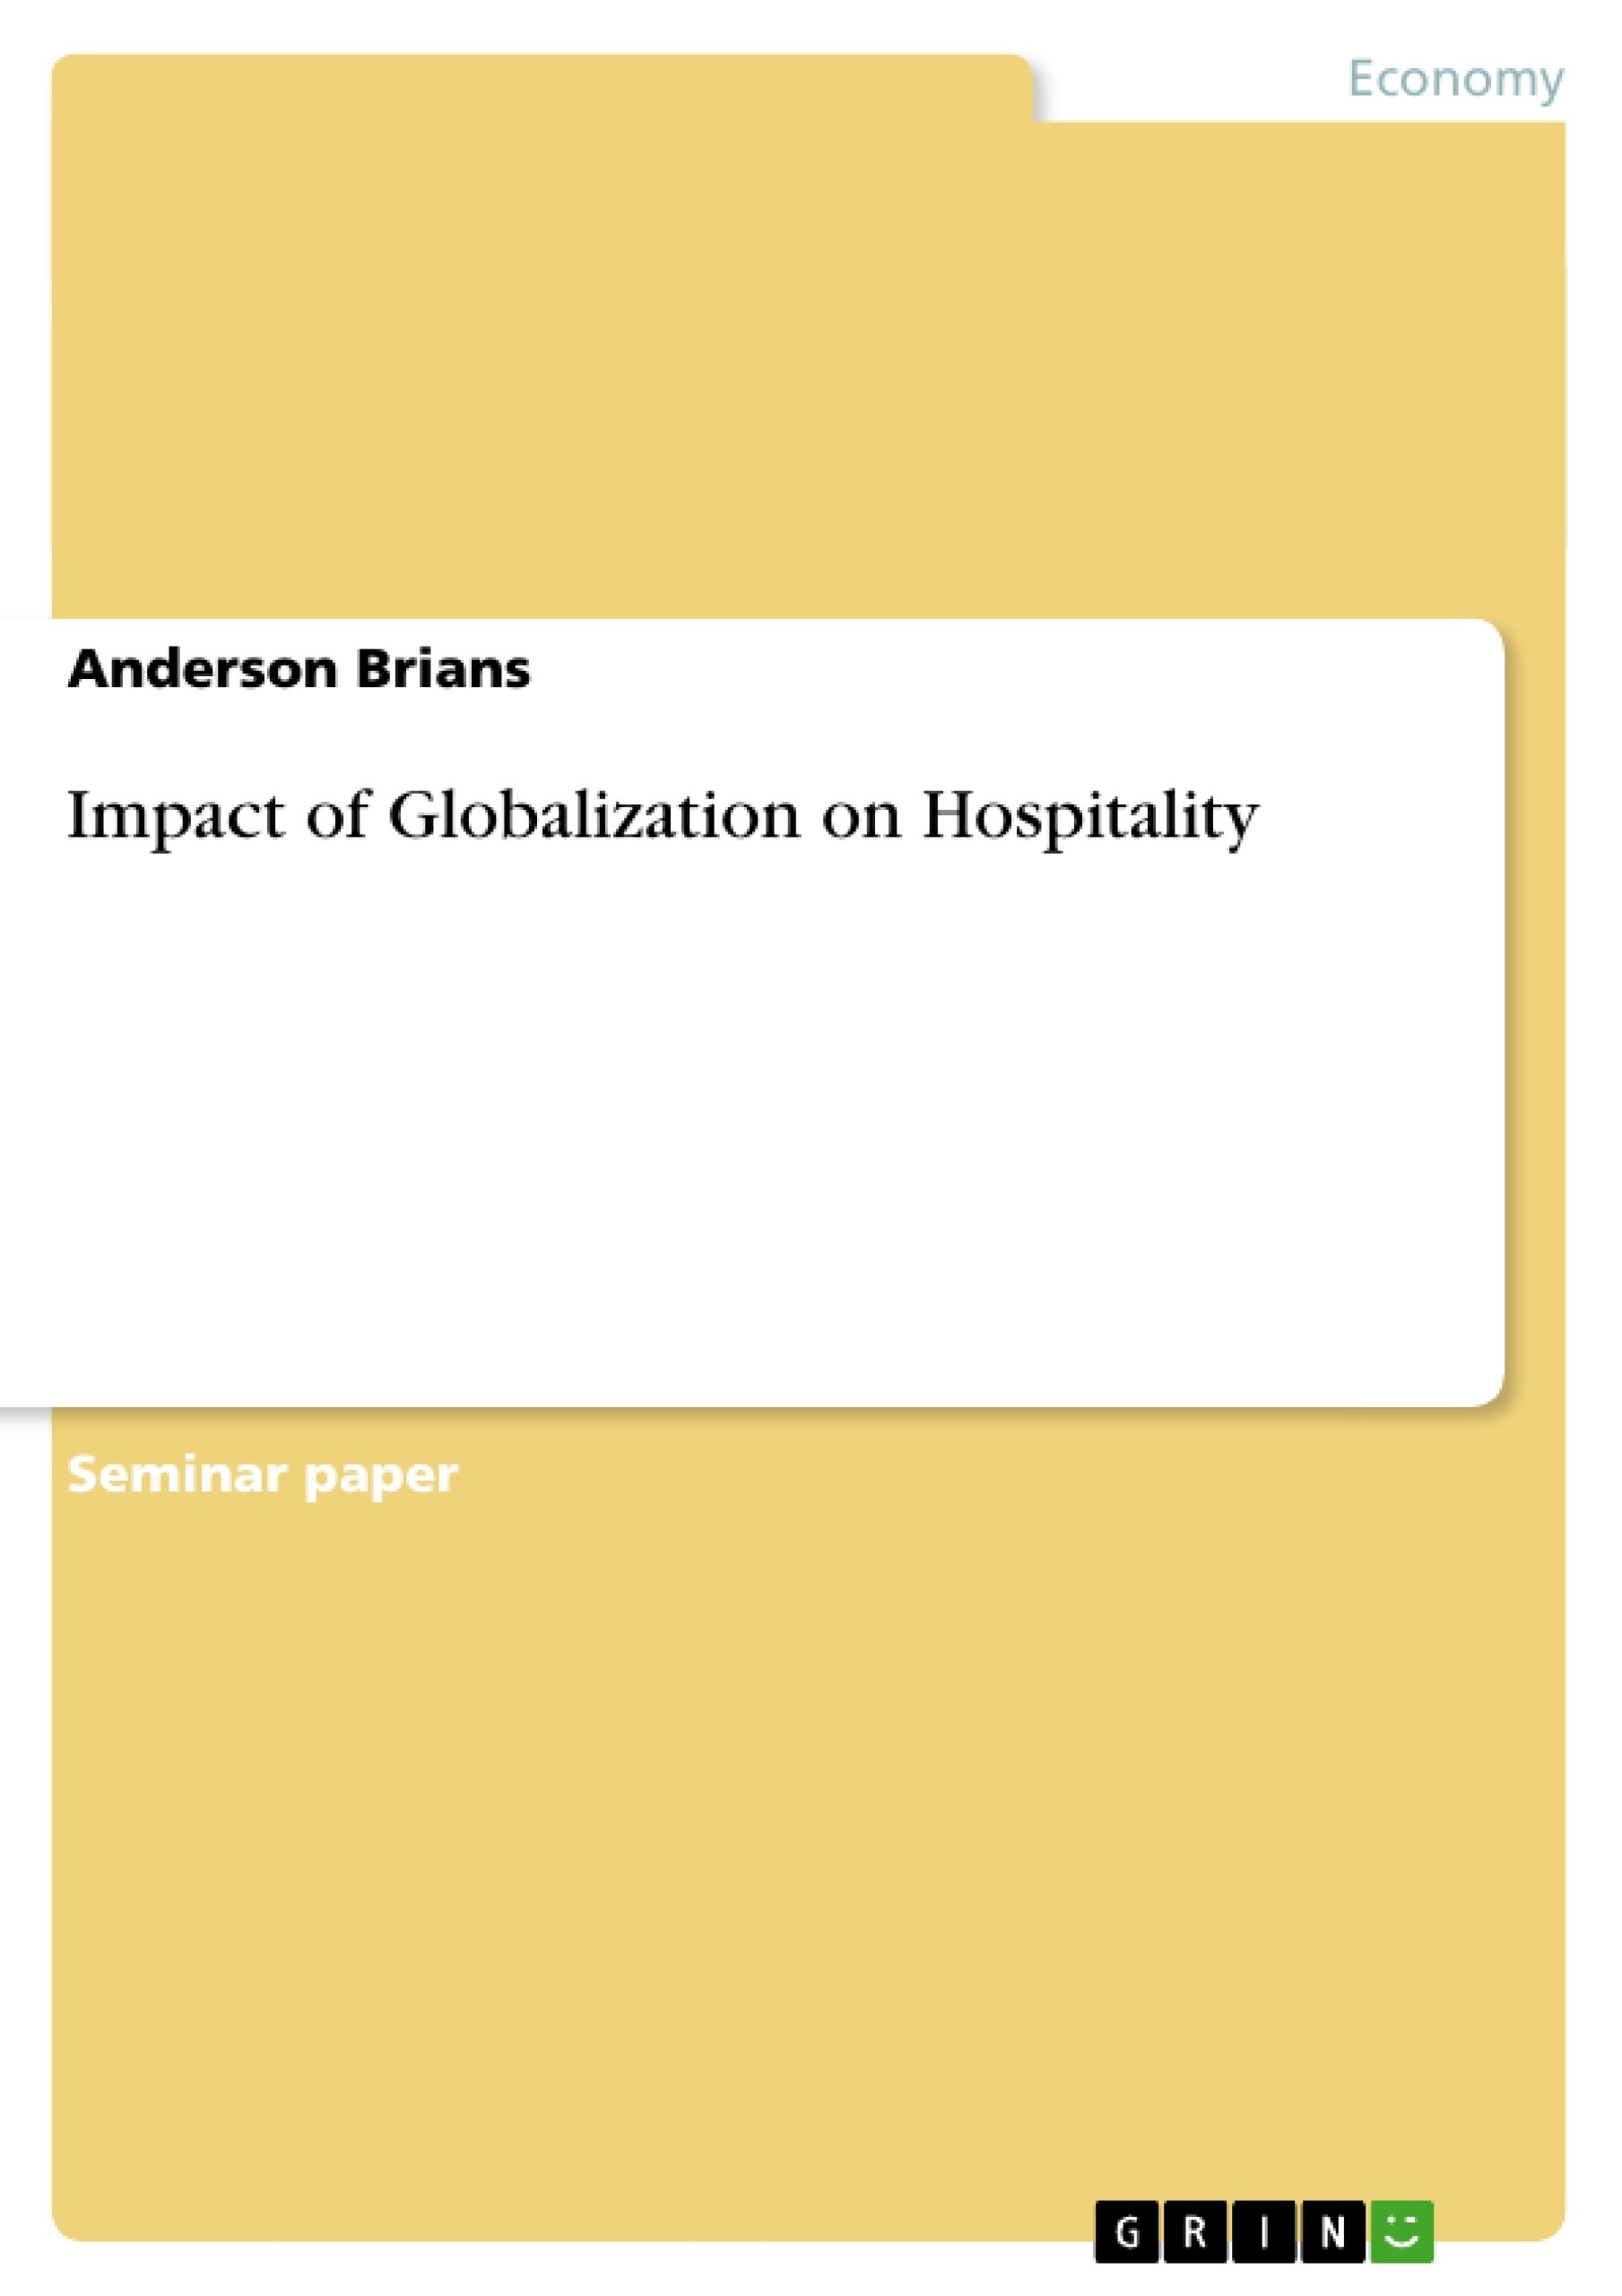 impact of globalization on hospitality publish your master s impact of globalization on hospitality publish your master s thesis bachelor s thesis essay or term paper